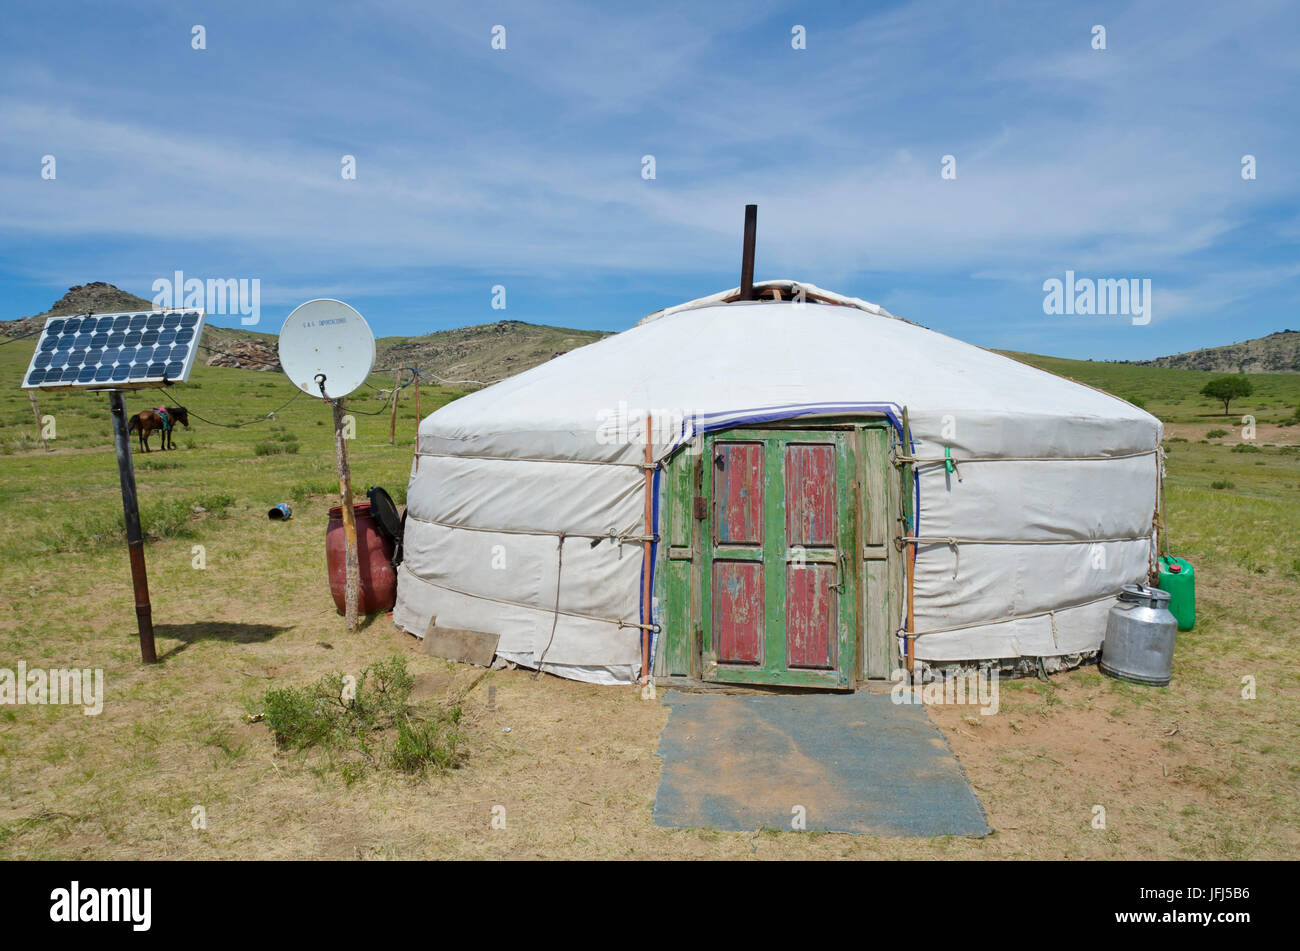 Mongolia, Central Asia, visit with a nomads family in the yurt between Khogno Khan and Dashinchilen - Stock Image